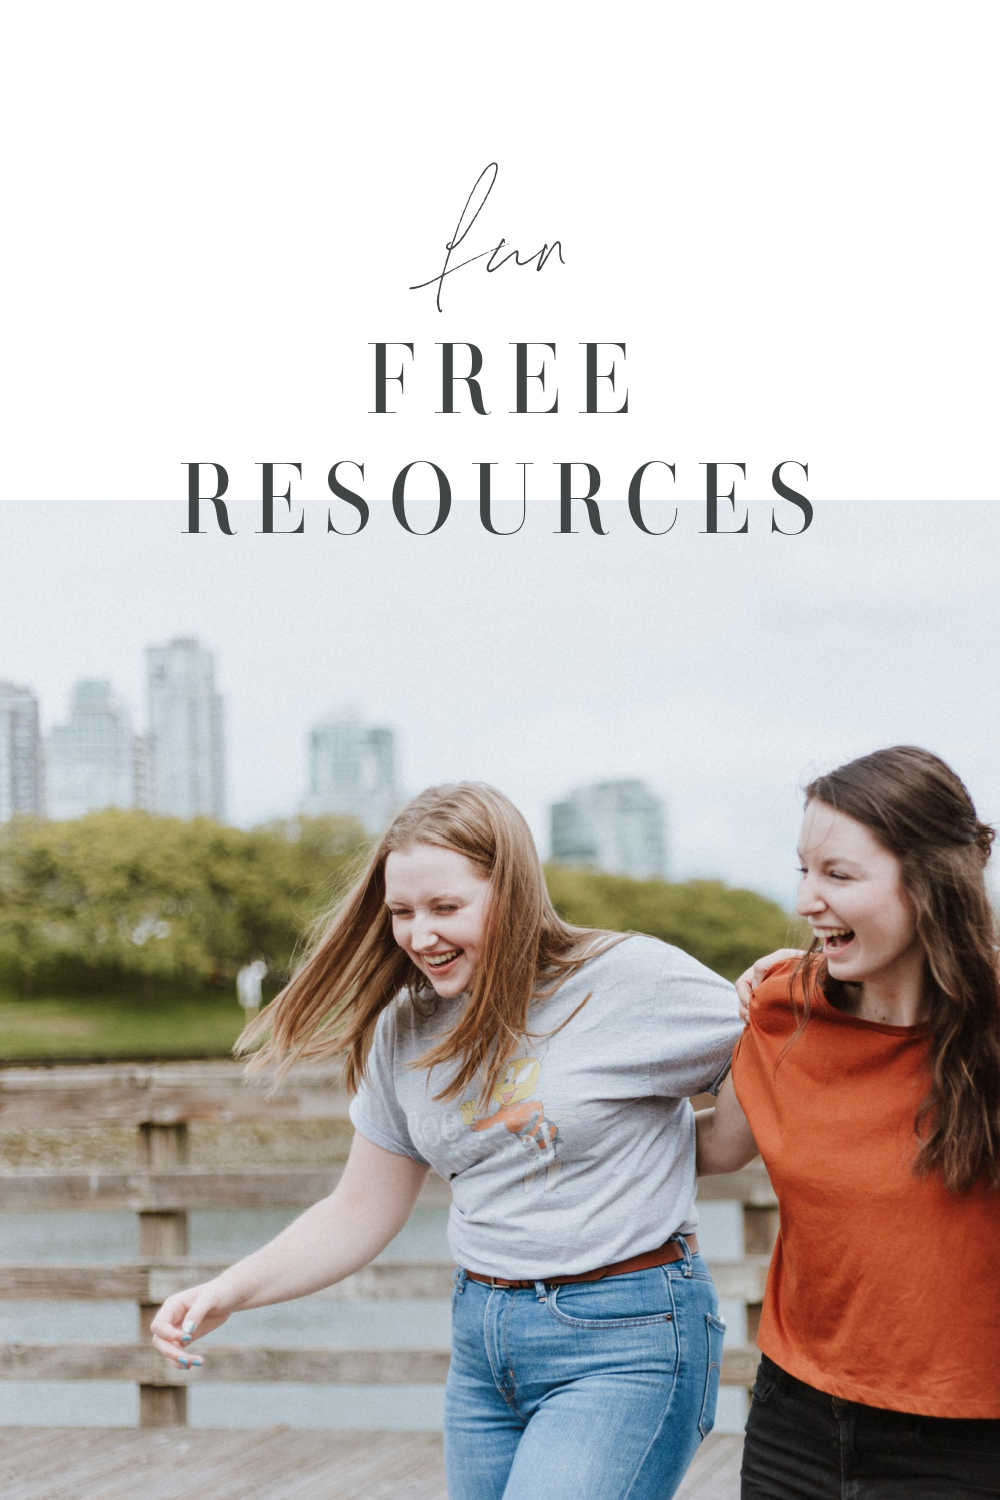 FUN FREE RESOURCES IN YOUR TOWN